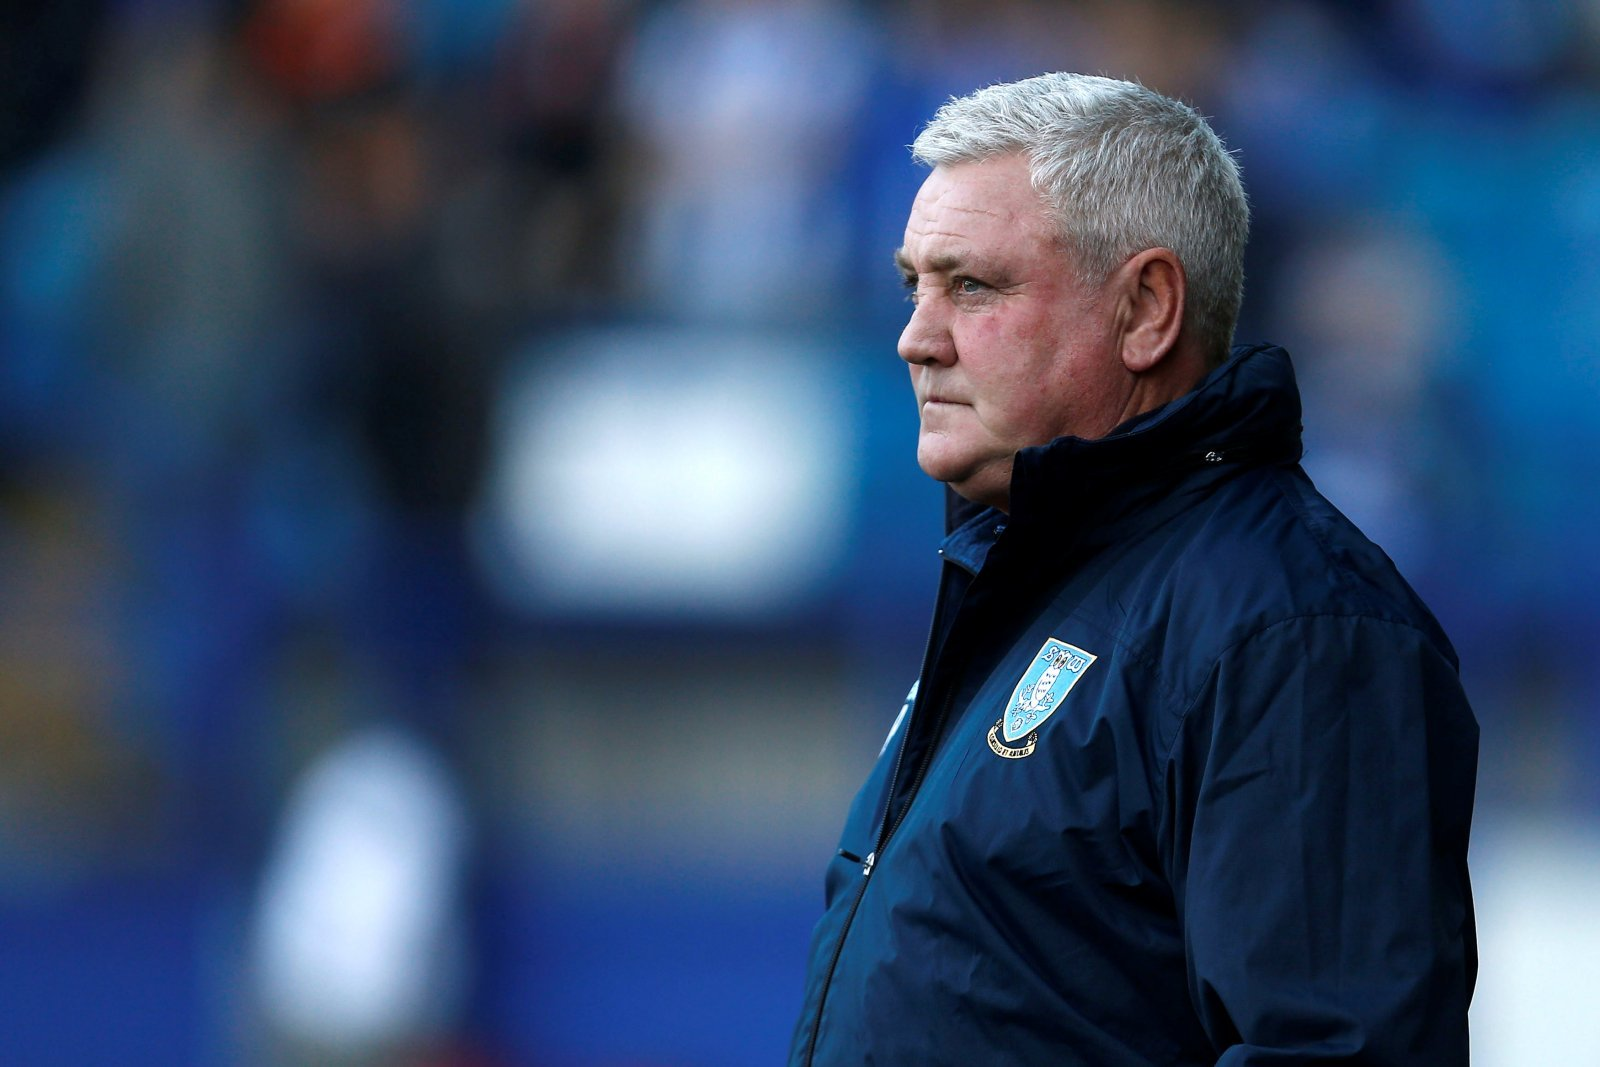 Opinion: Bruce's start to life at Sheffield Wednesday means promotion is a real possibility next season